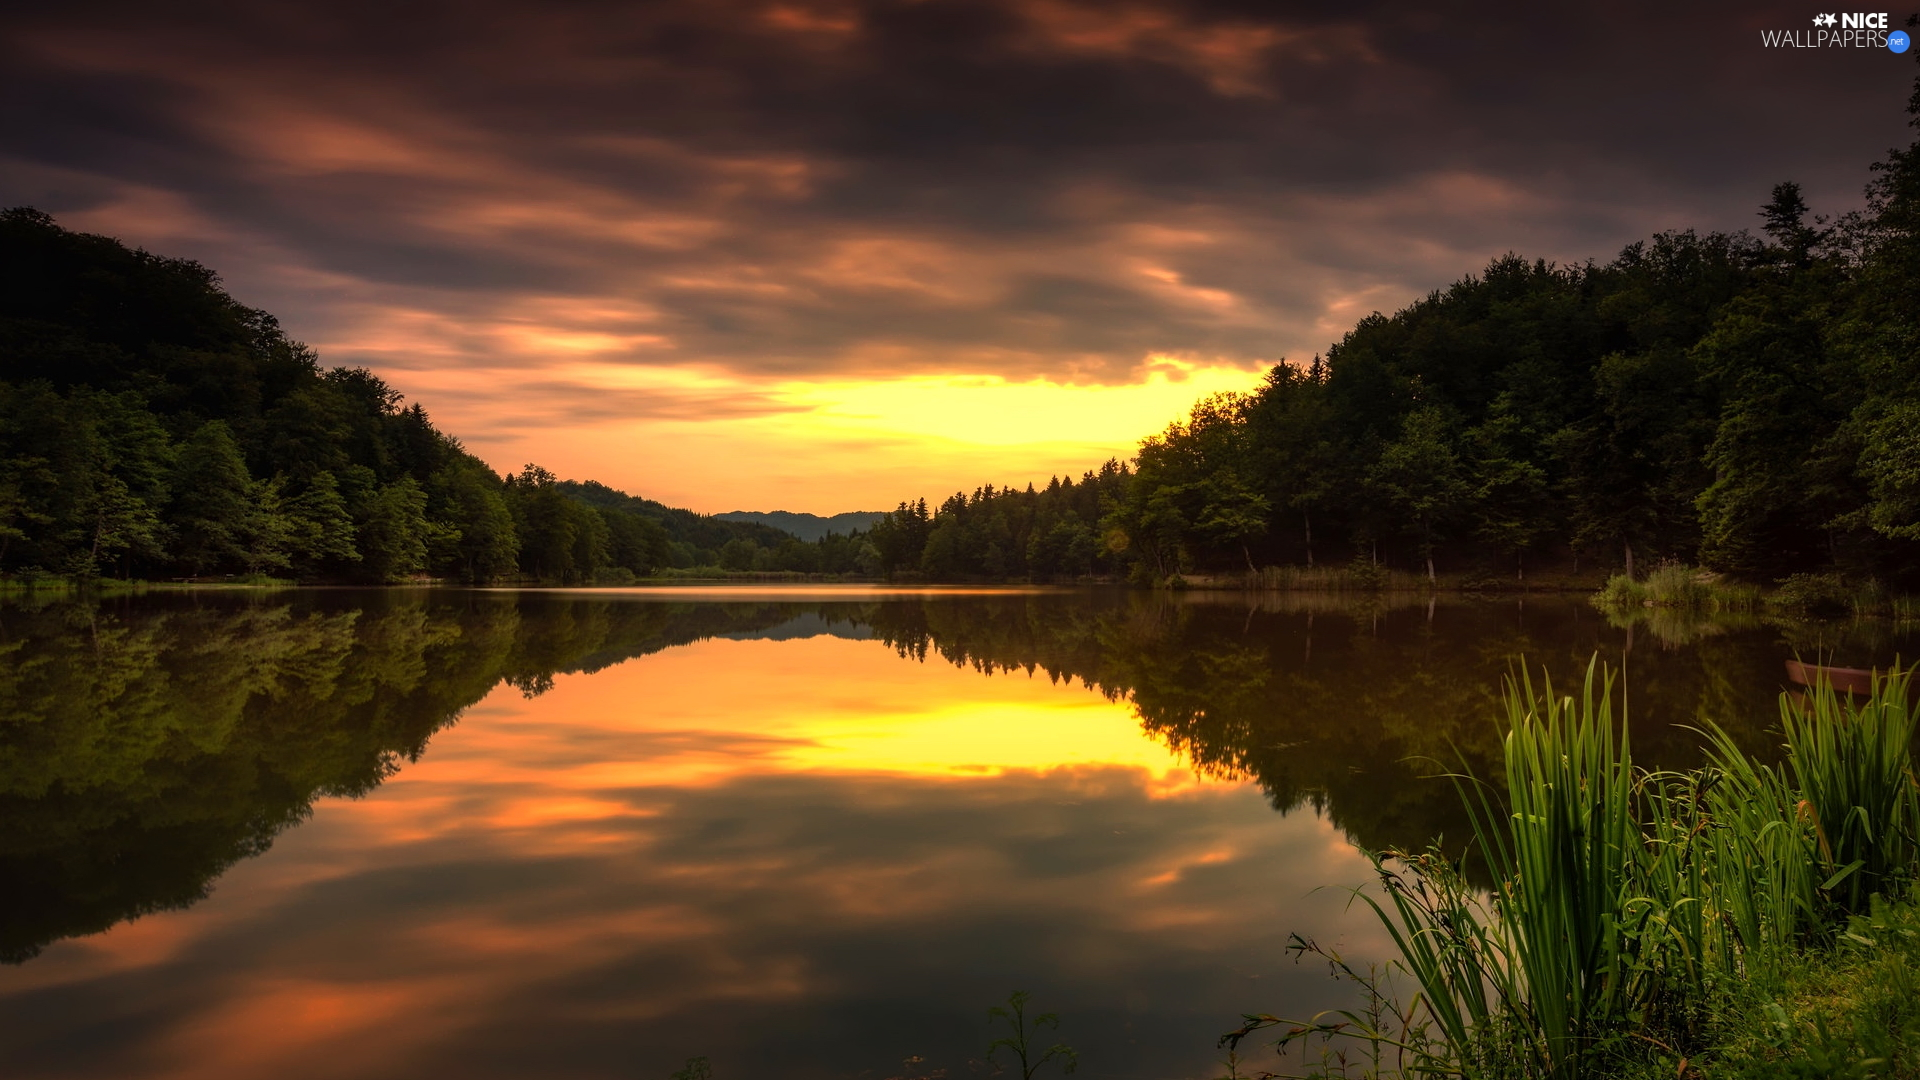 trees, Great Sunsets, scrub, reflection, viewes, lake